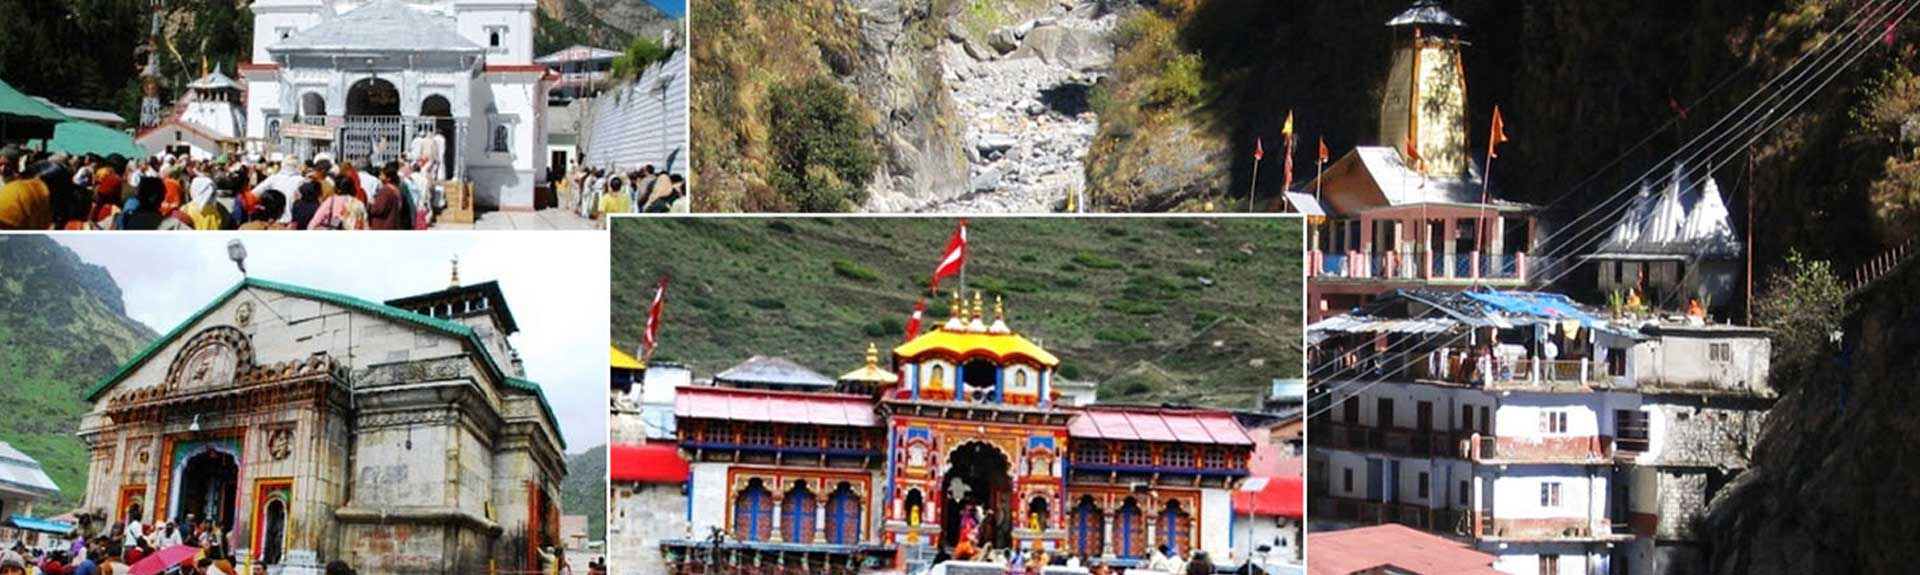 Budget Car/Taxi rental for Chardham Yatra